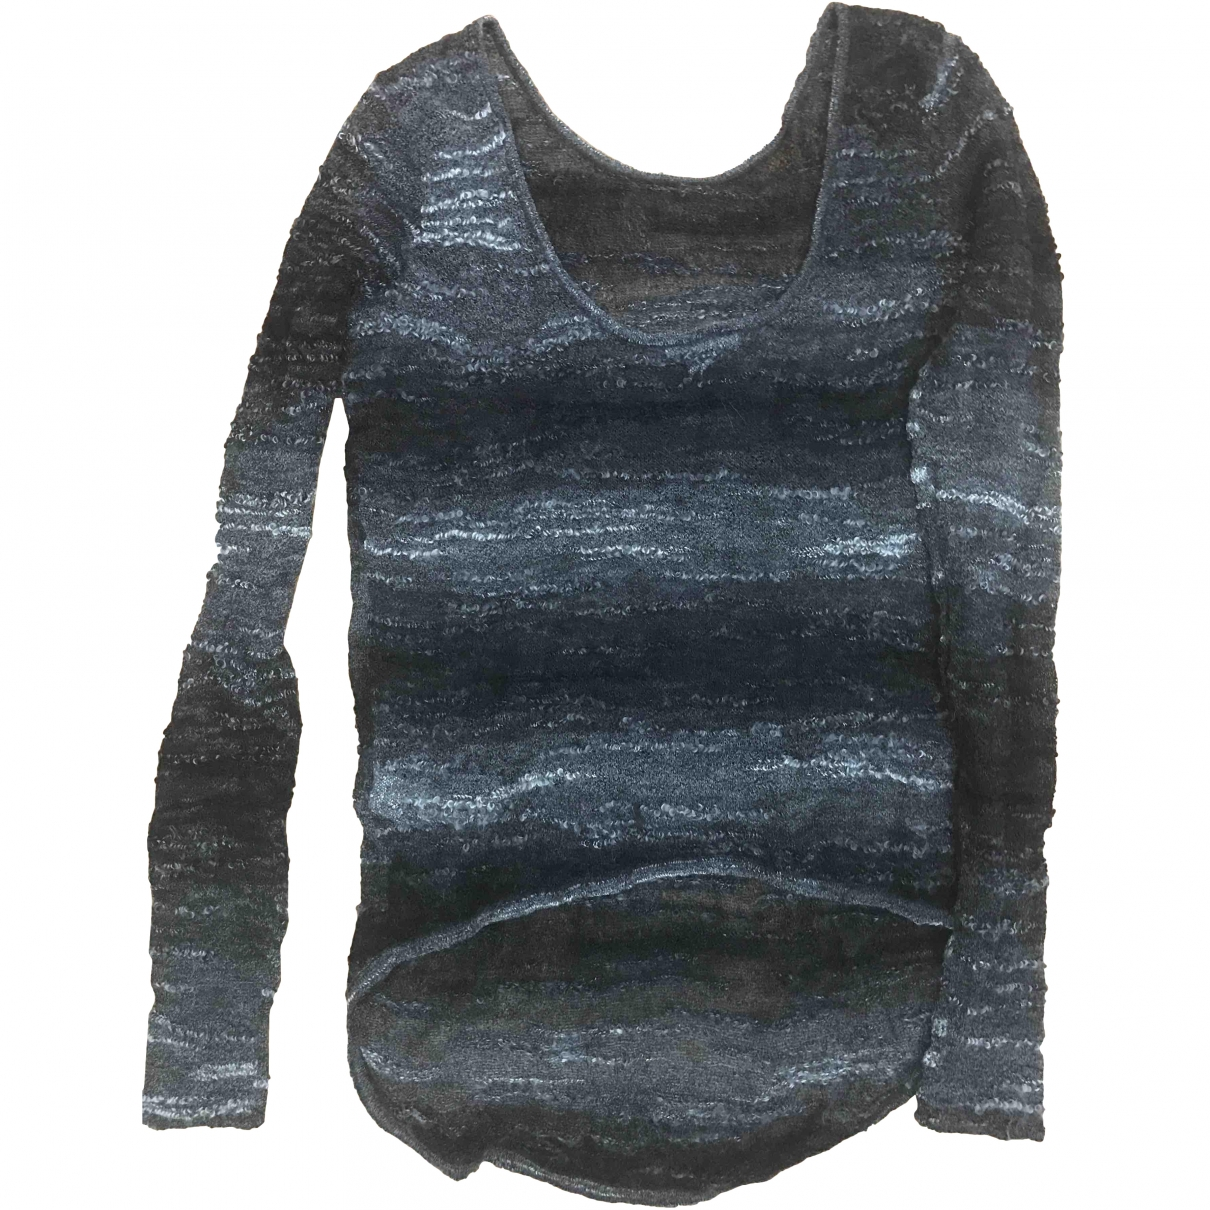 Helmut Lang \N Anthracite Knitwear for Women S International